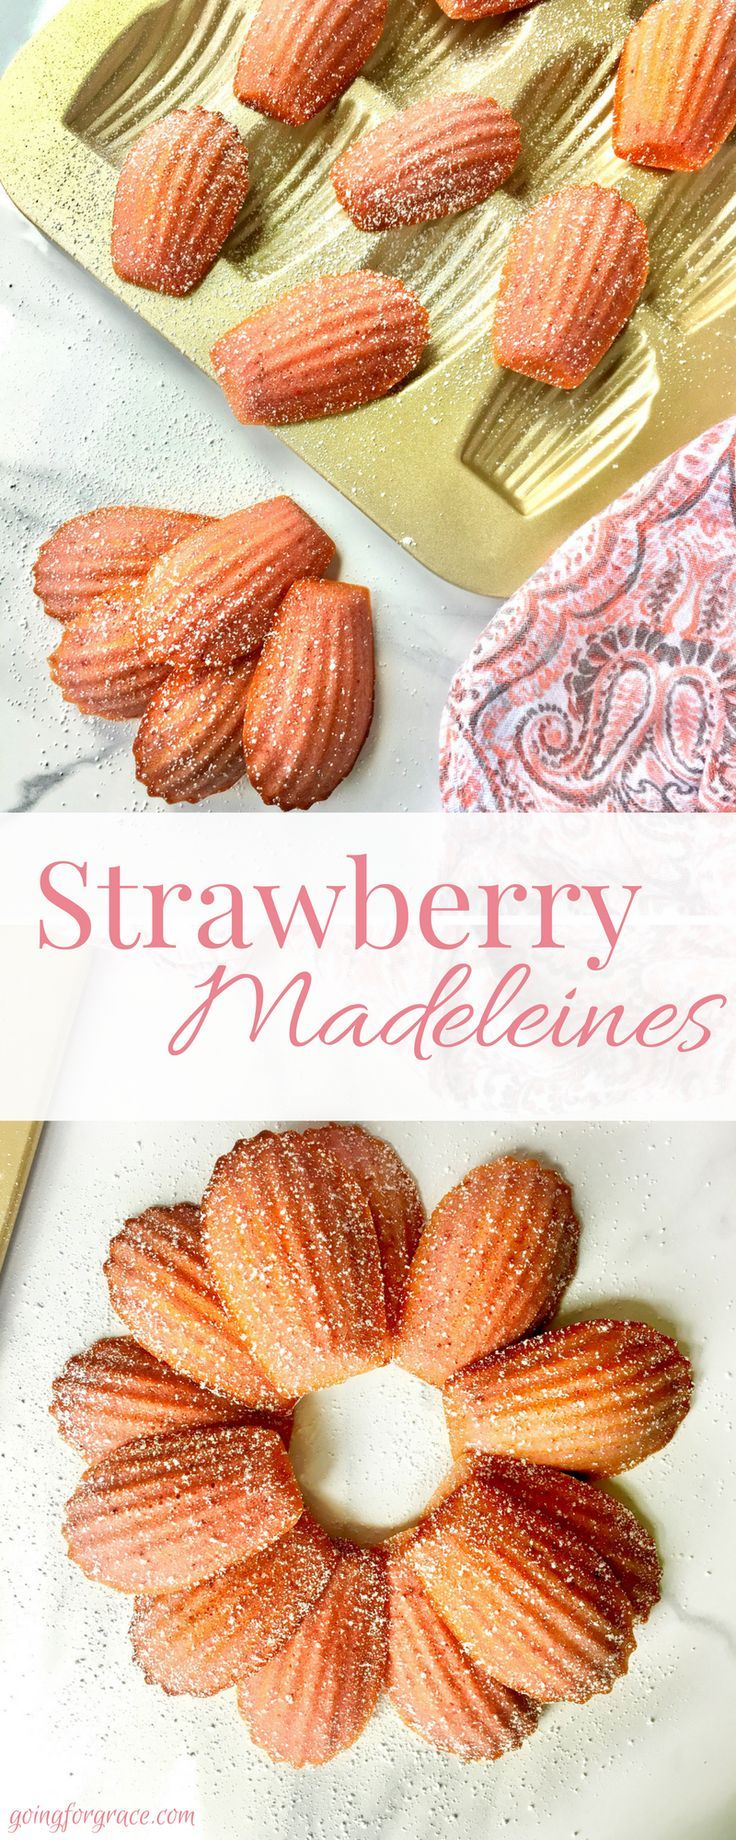 Fresh Strawberry Madeleines - Going for Grace